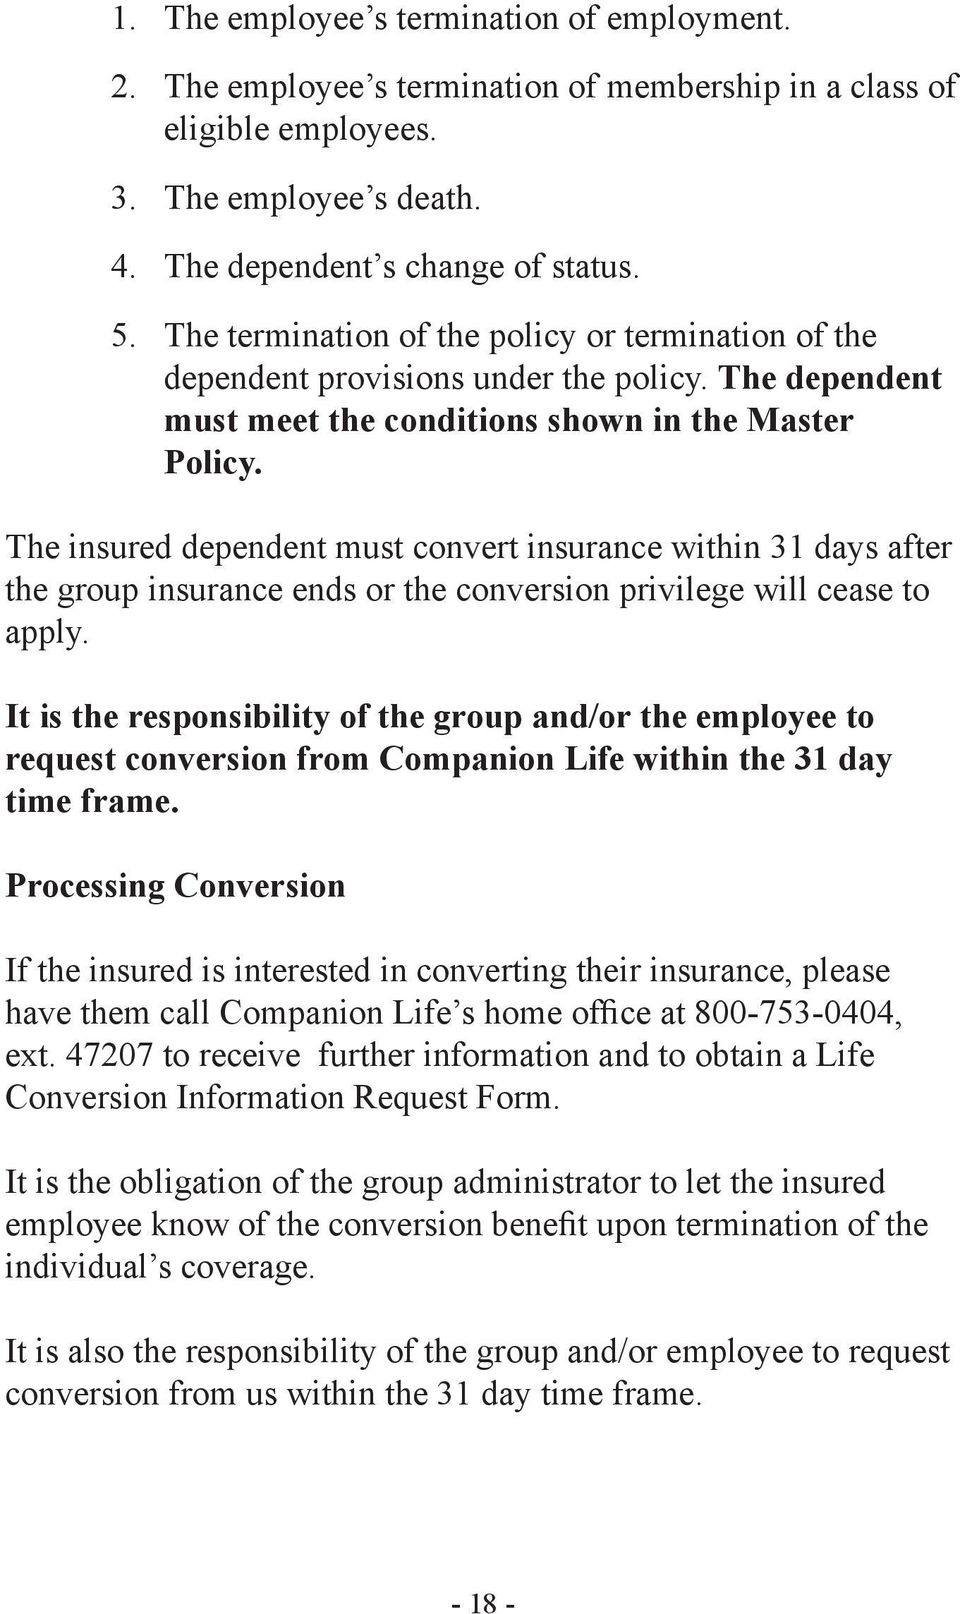 The insured dependent must convert insurance within 31 days after the group insurance ends or the conversion privilege will cease to apply.